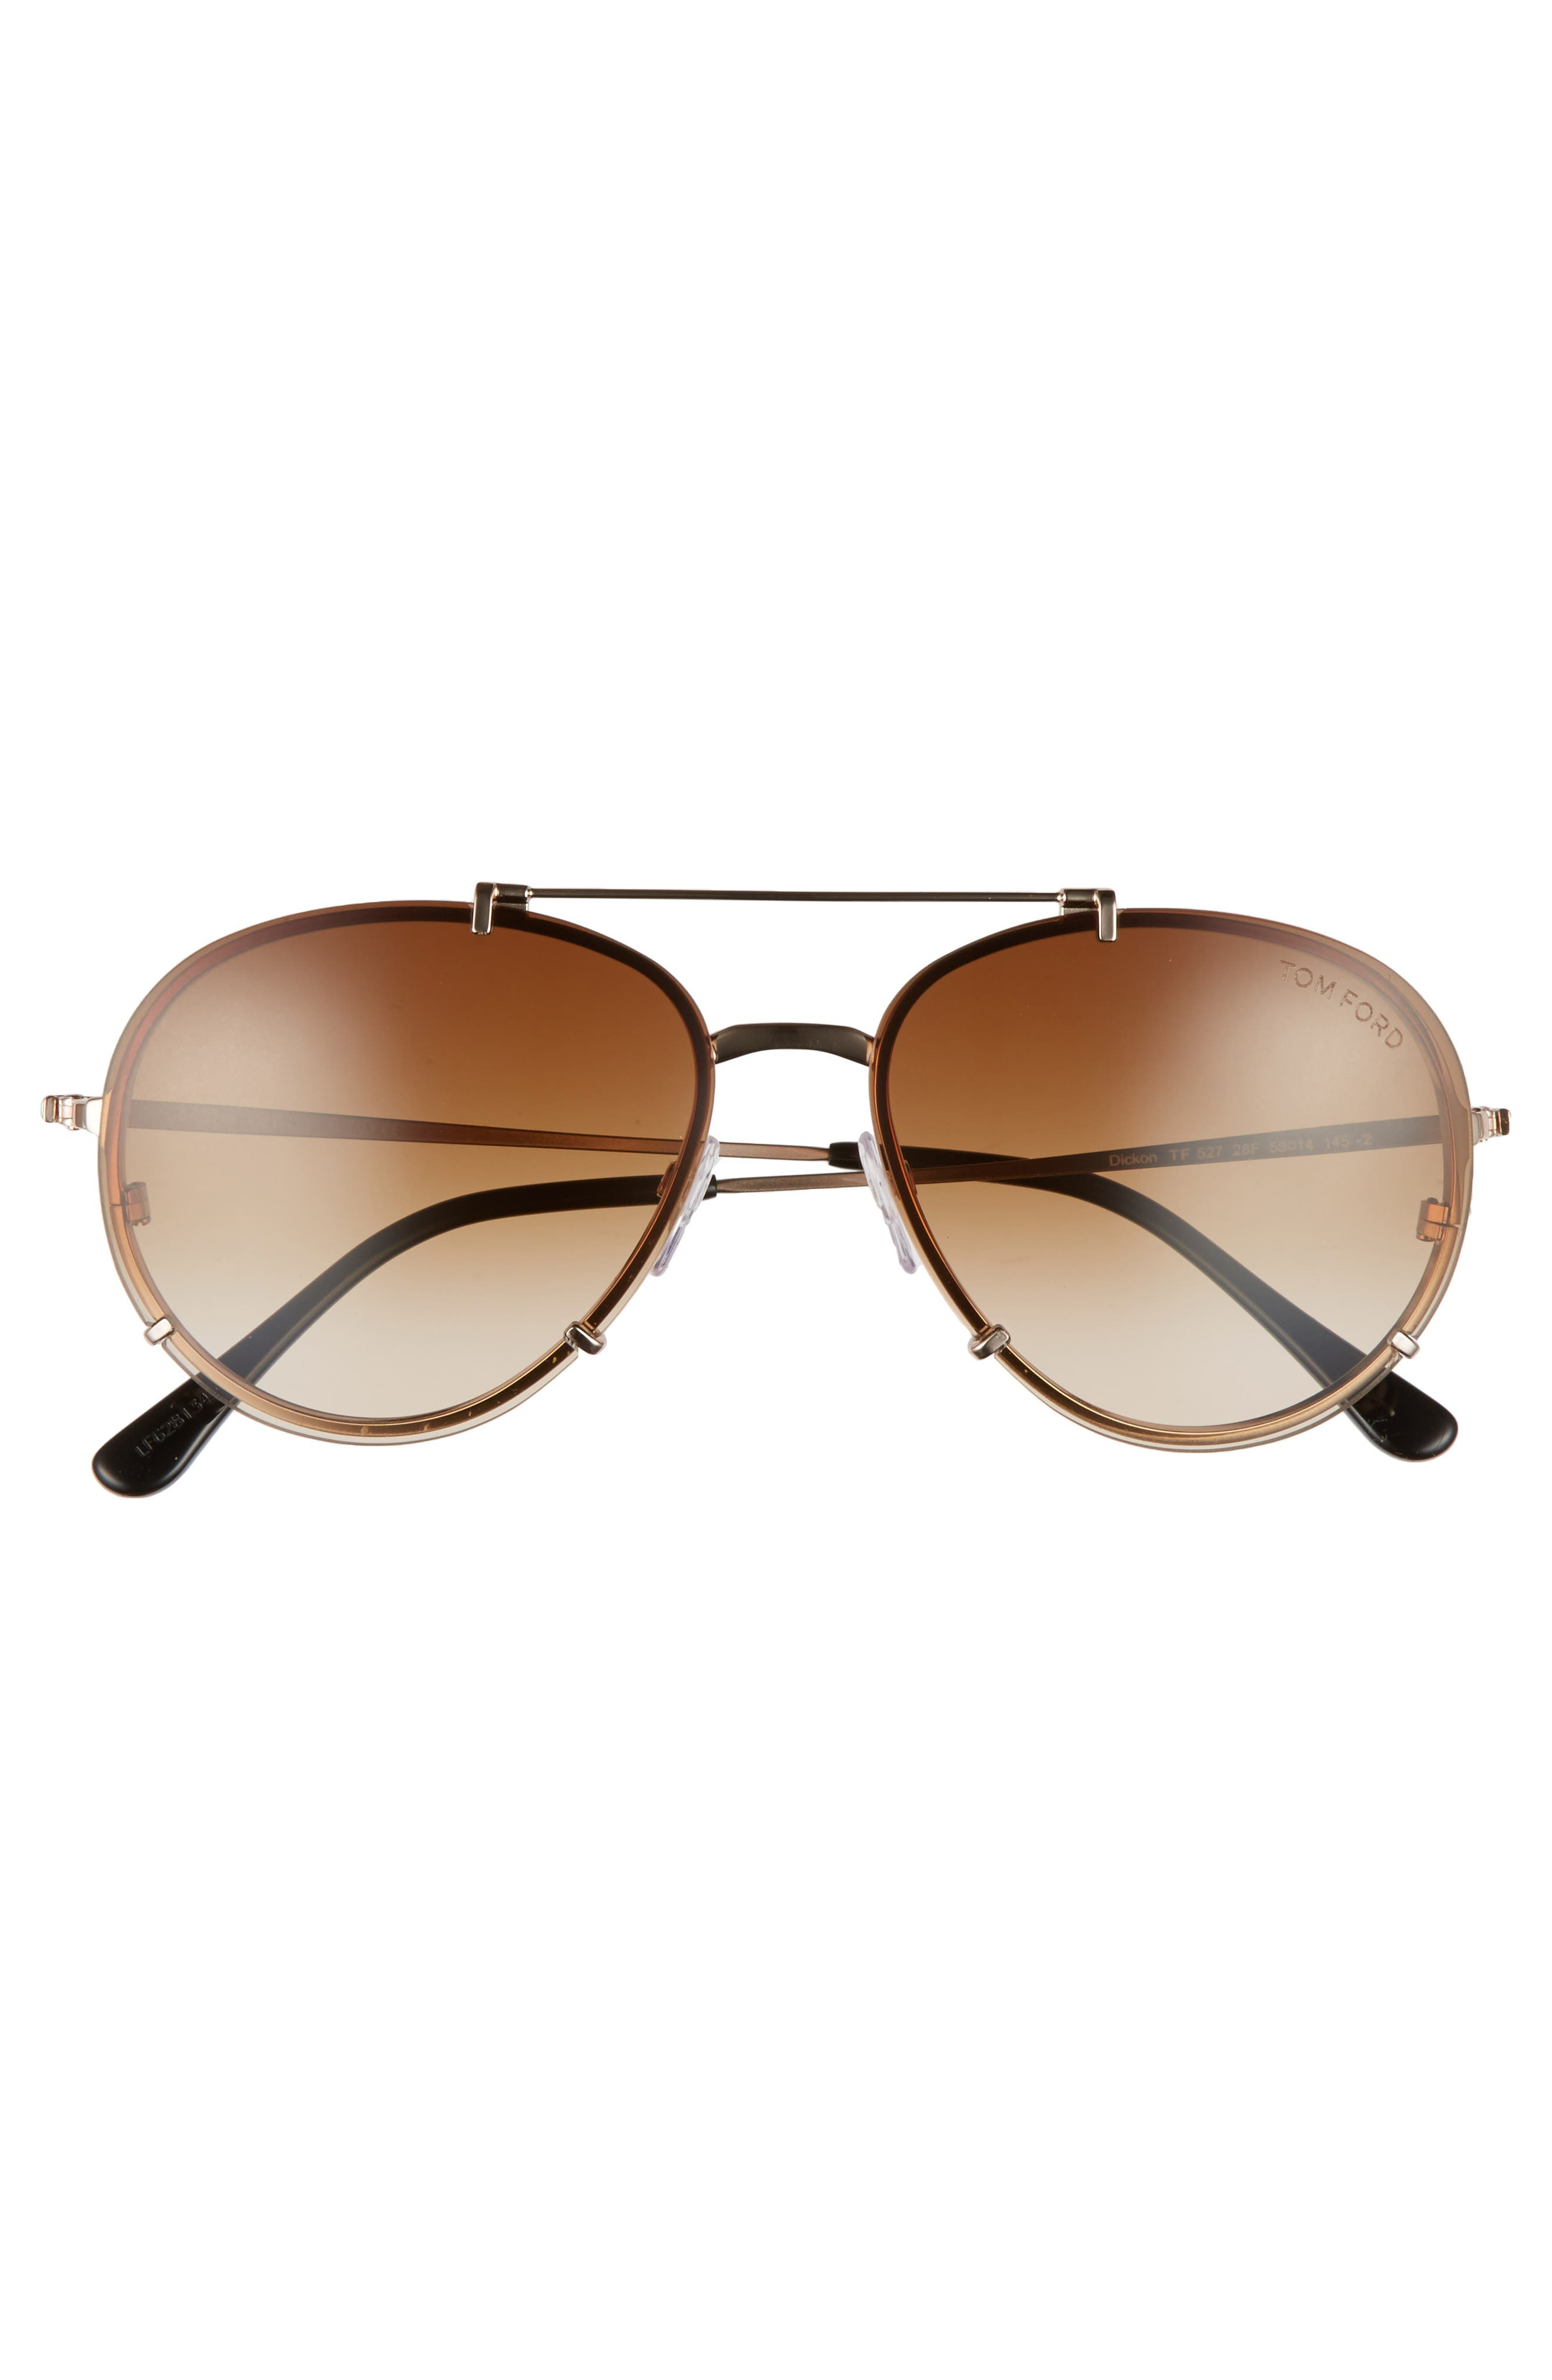 Dickon 59mm Aviator Sunglasses,                             Alternate thumbnail 3, color,                             ROSE GOLD/ BROWN